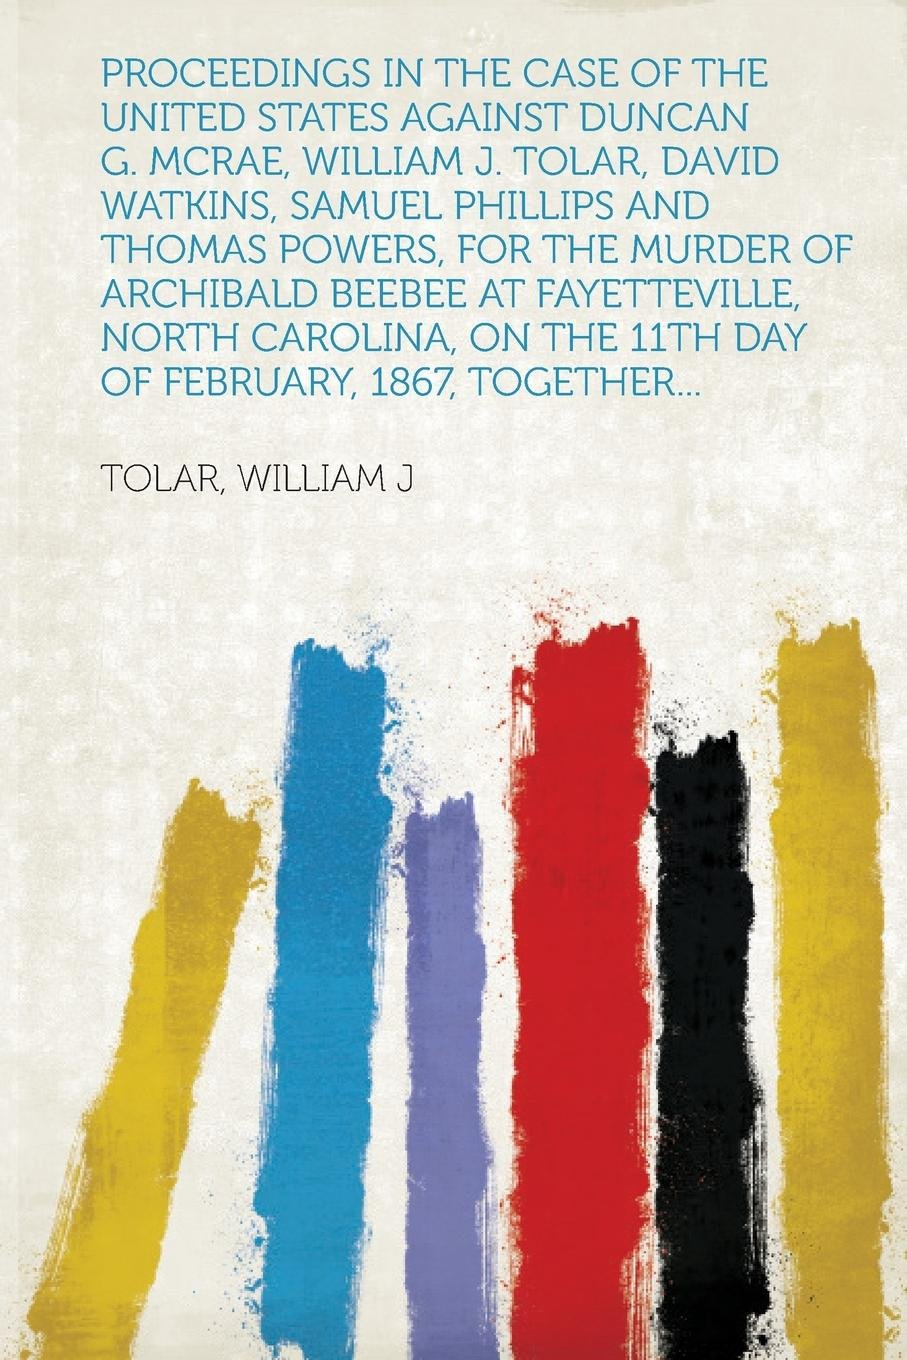 Download Proceedings in the Case of the United States Against Duncan G. McRae, William J. Tolar, David Watkins, Samuel Phillips and Thomas Powers, for the Murd PDF